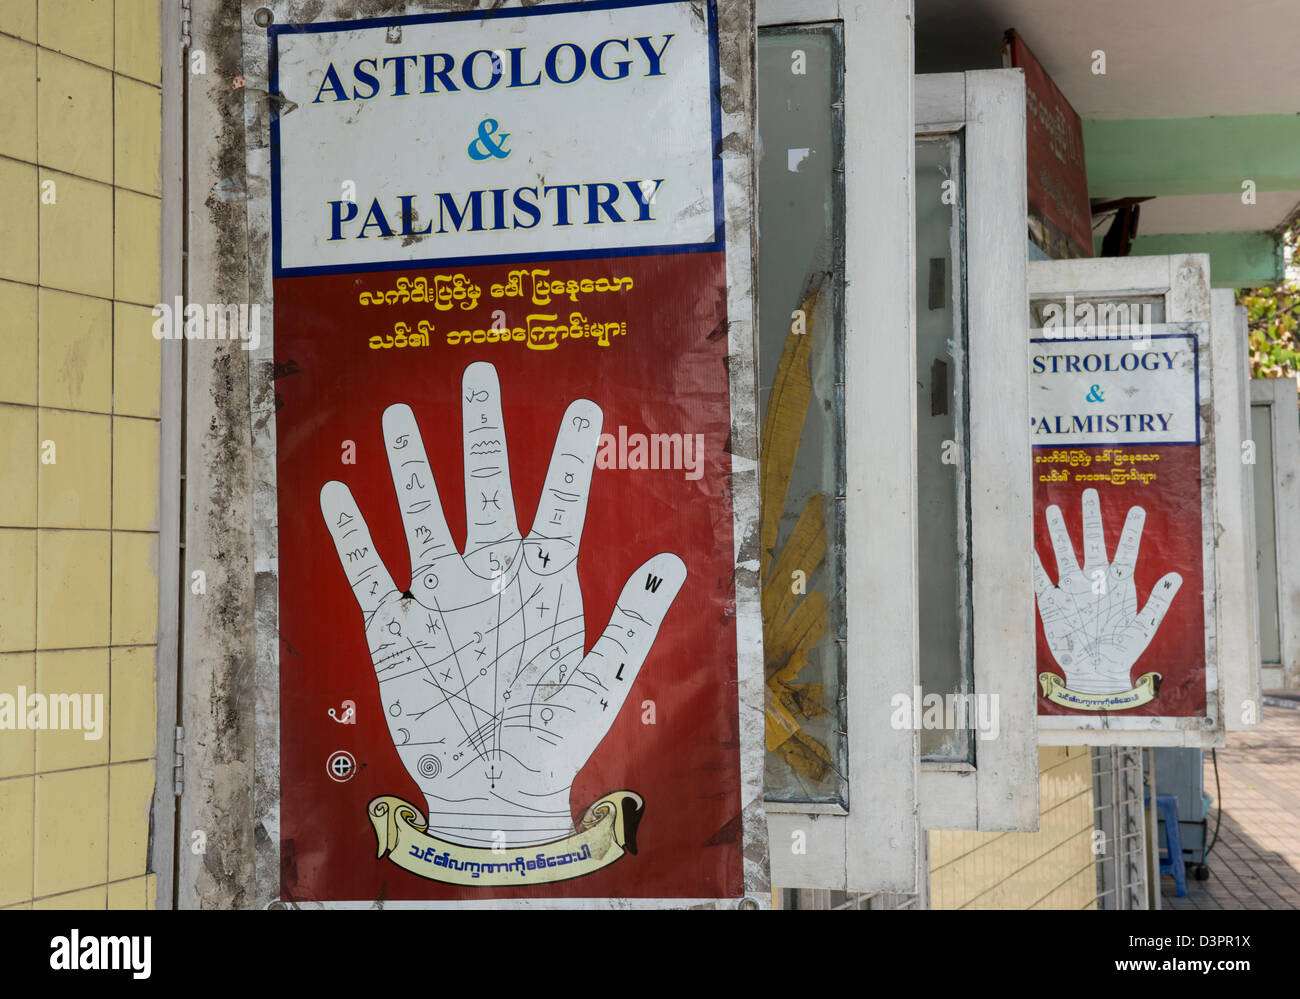 Astrology Stock Photos & Astrology Stock Images - Alamy